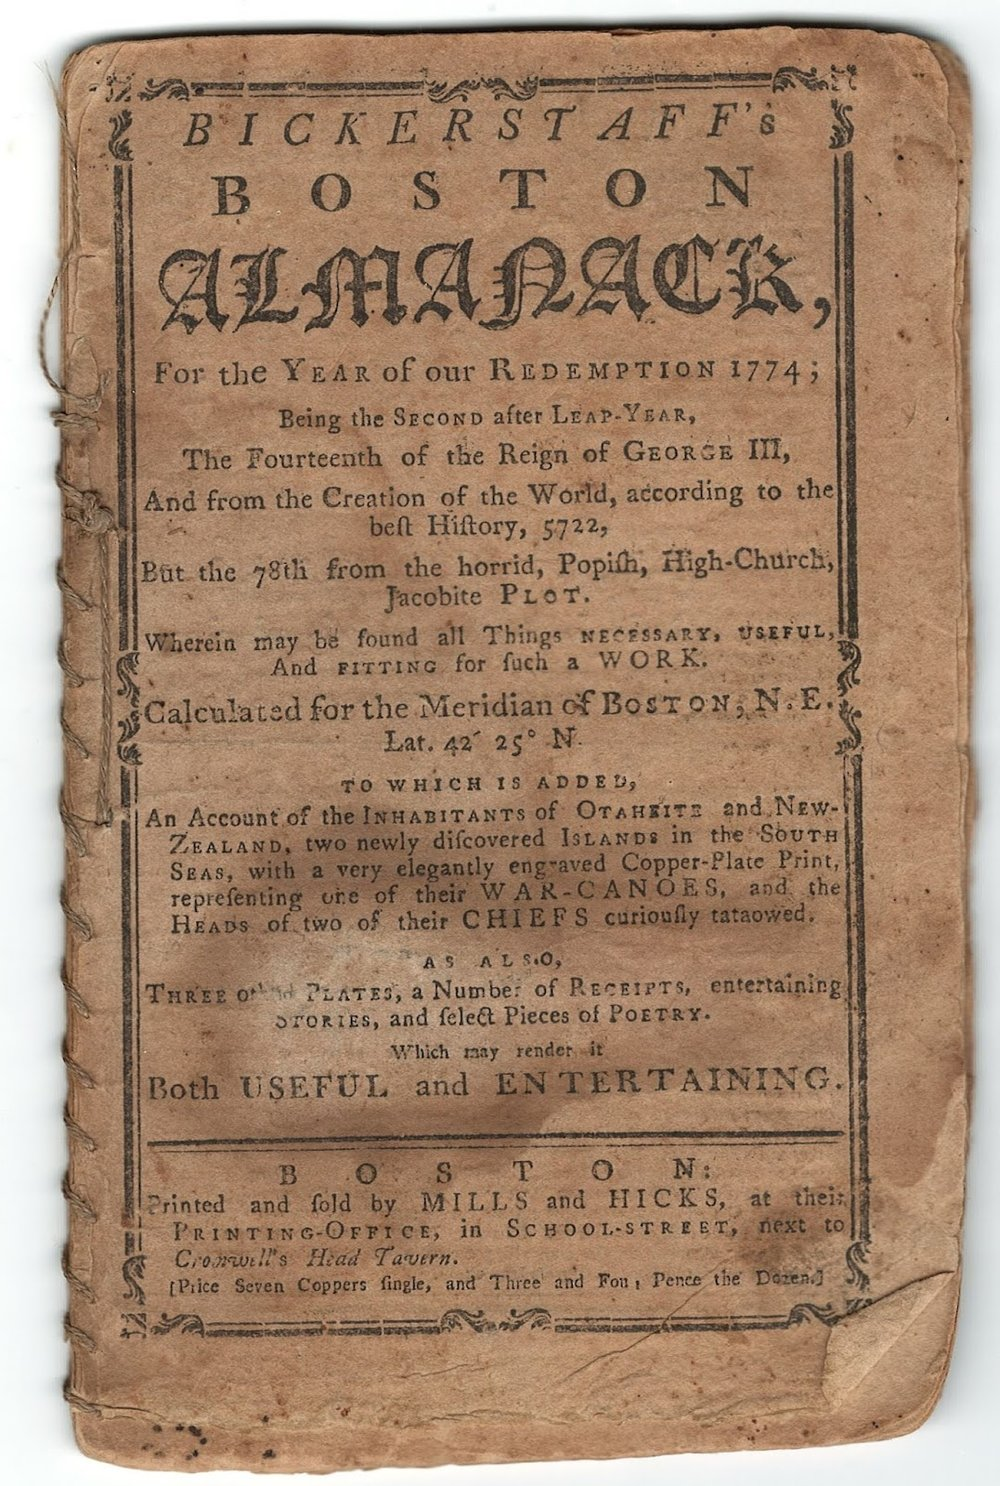 Bickerstaff's Boston Almanack, 1774 AY 201 .B7 B52